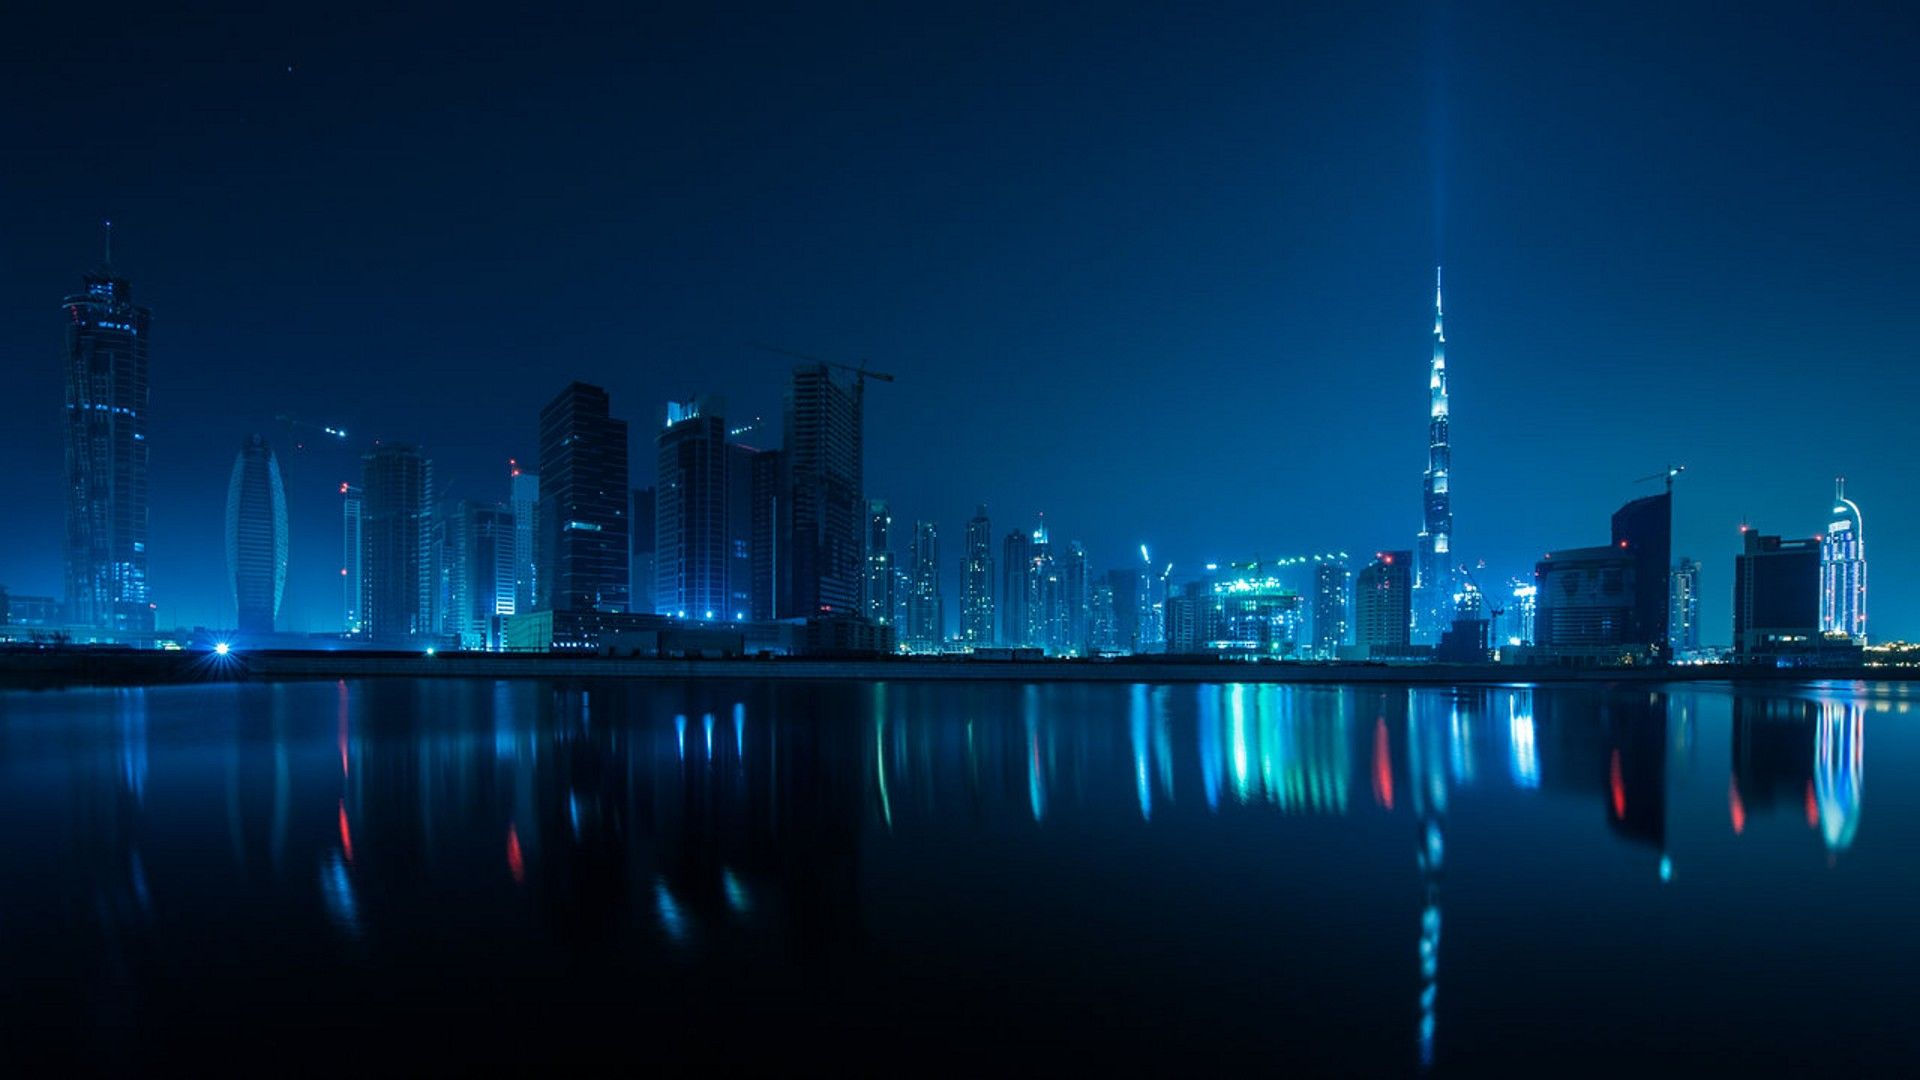 Cityscapes Dubai Blue Pictures 1920x1080 Wallpaper Cityscape Night Skyline Aesthetic Wallpapers